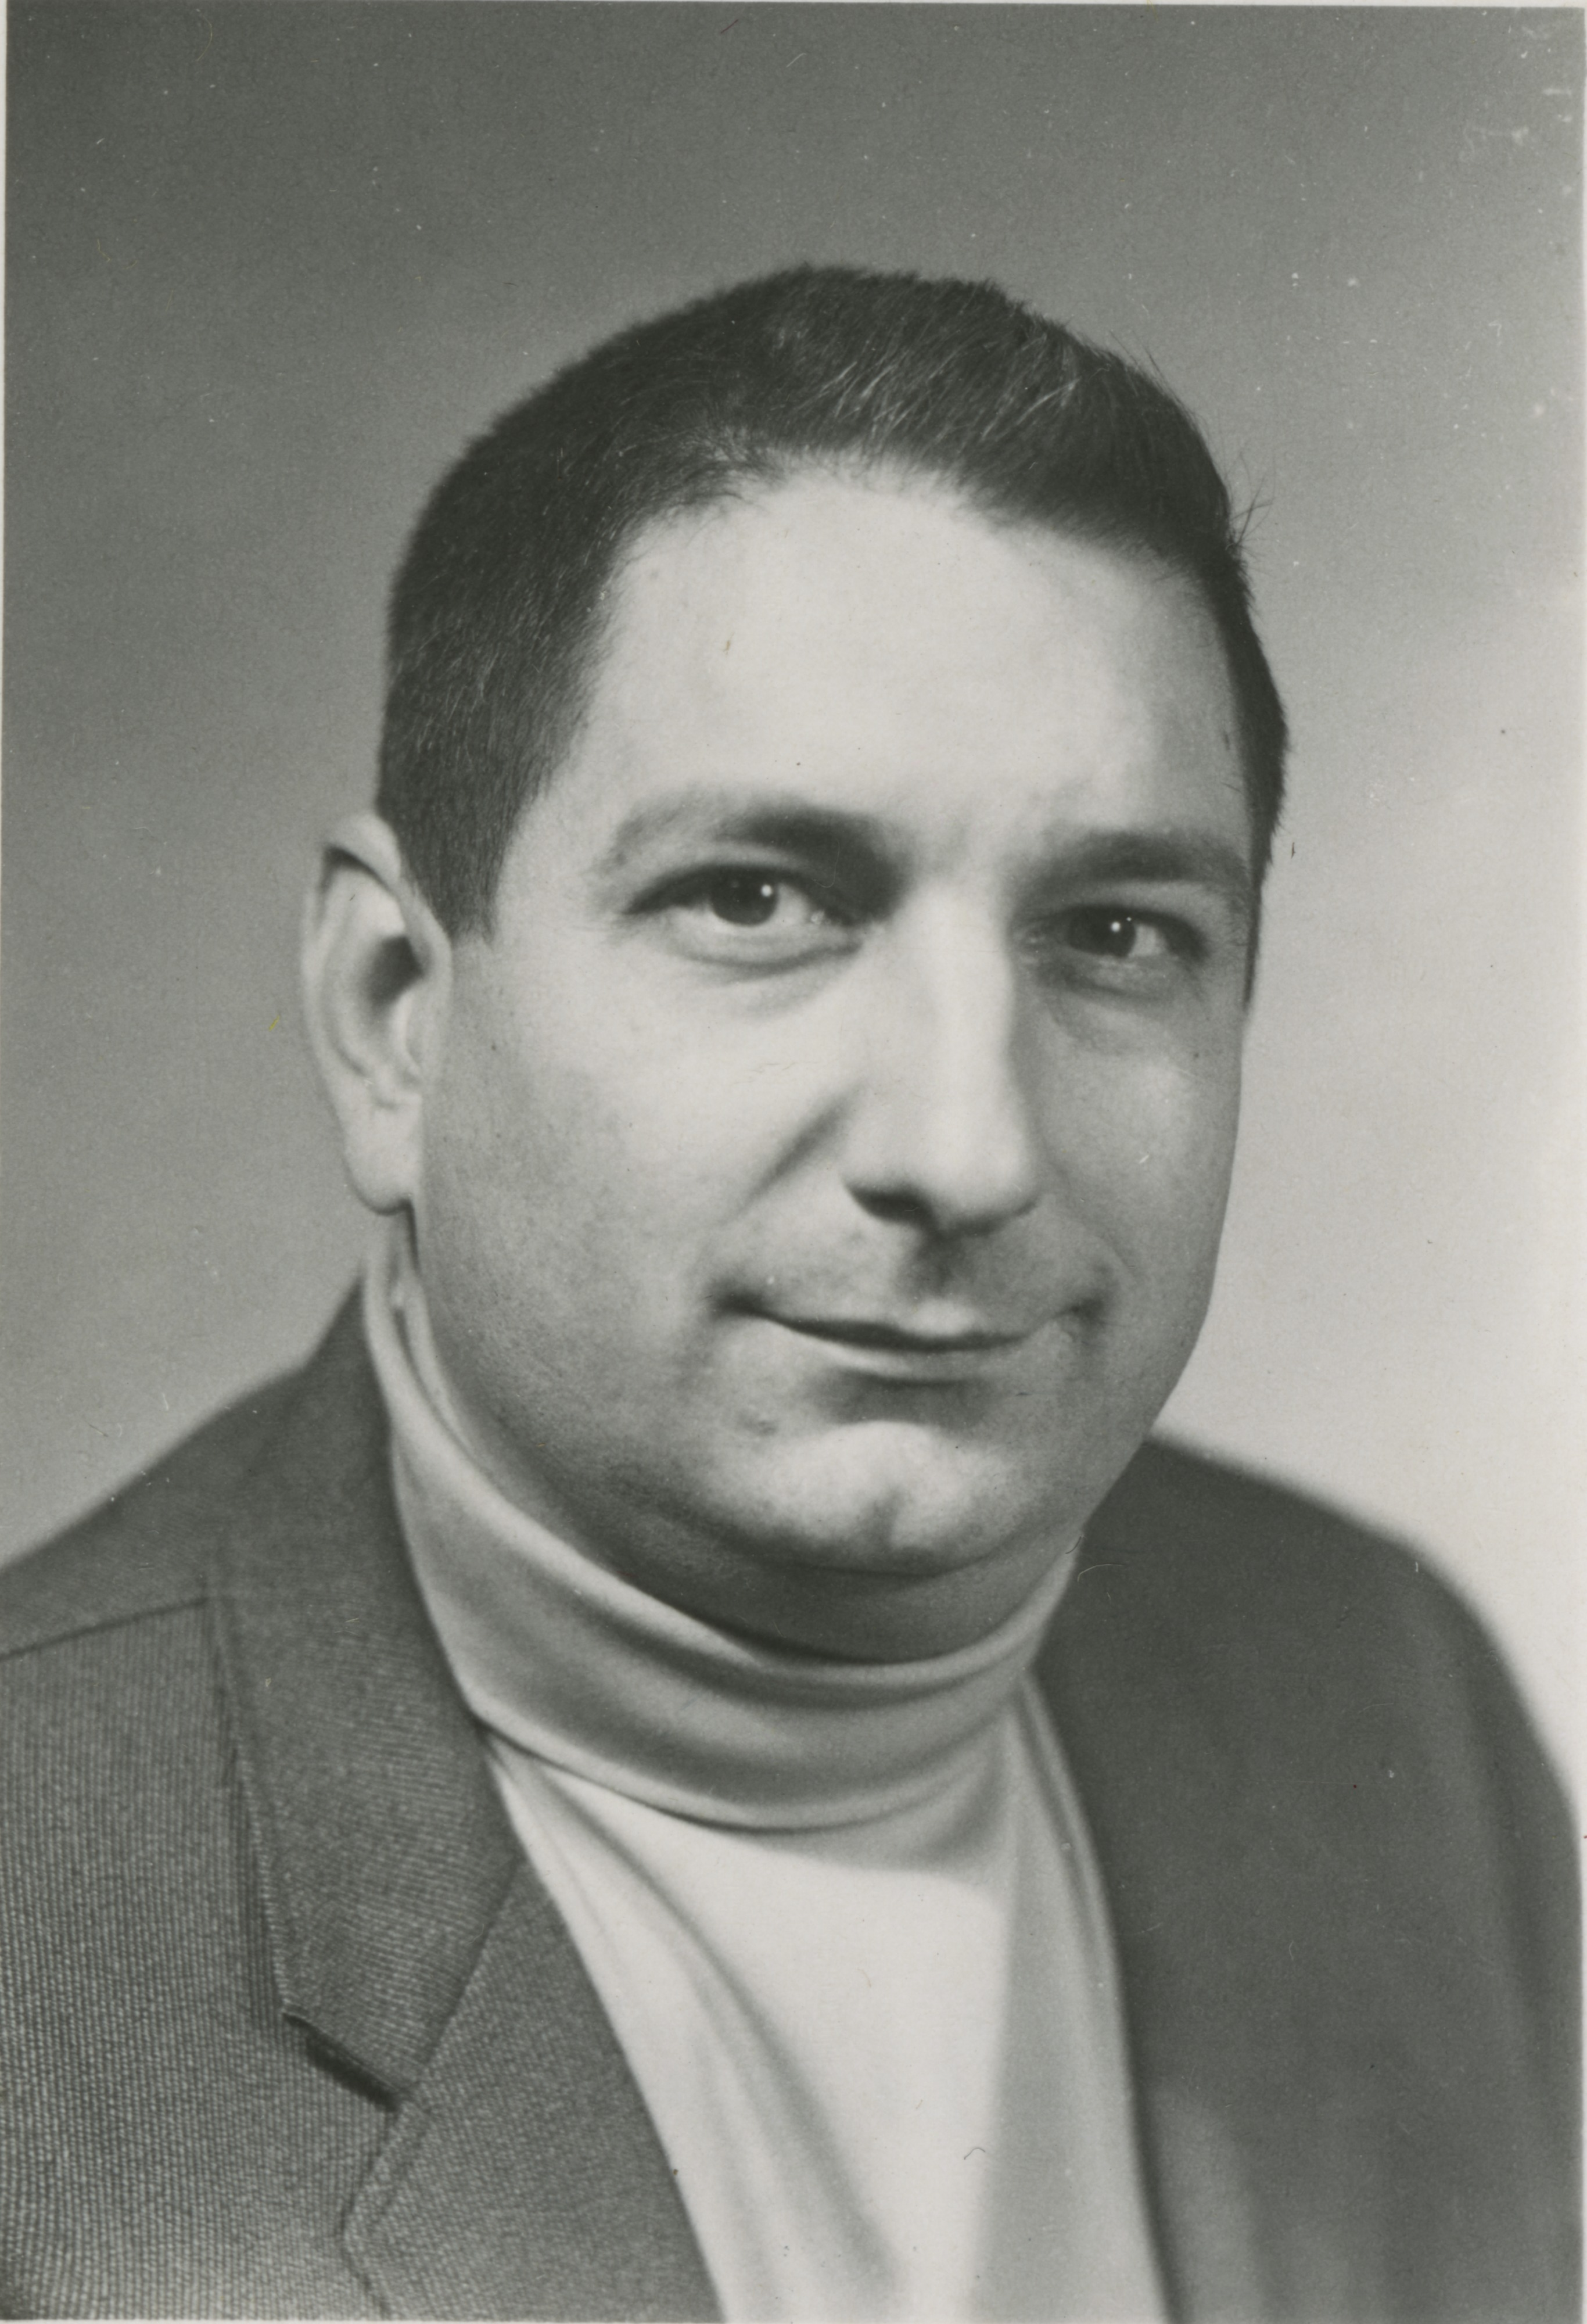 Portrait of Dr. Russell F. Smith, January 1970 image